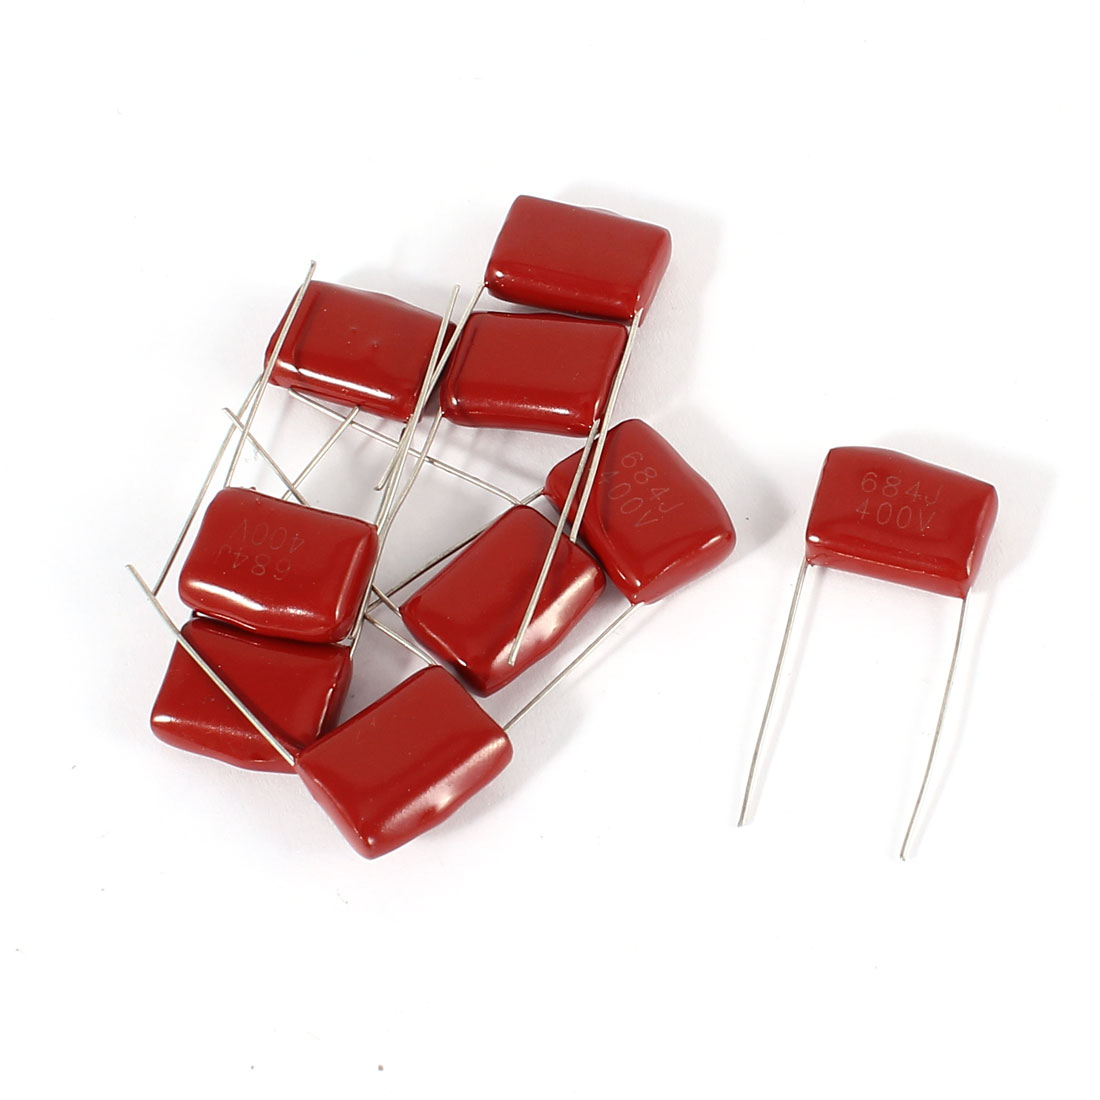 9pcs 400V 684J 0.68uf Radial Lead Through Hole Mounting Metallized Polypropylene Film Capacitors